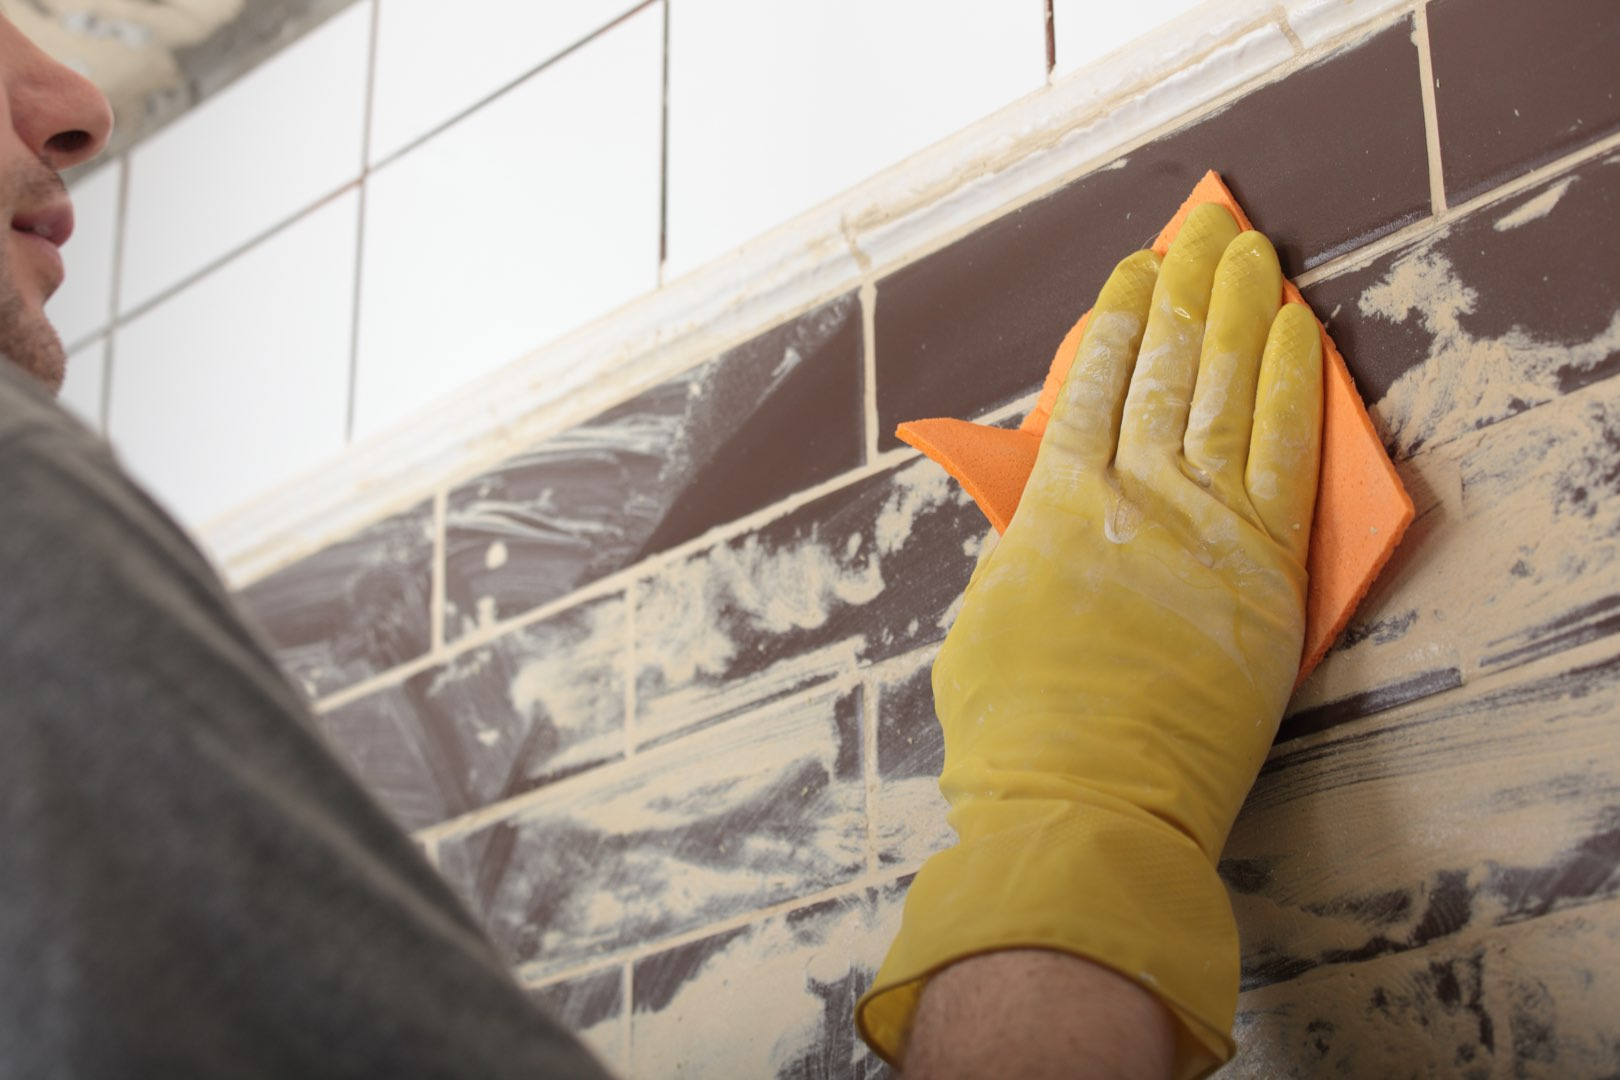 Grouting tile. Construction cleanup companies also use this practice as a final touch on tiled walls.